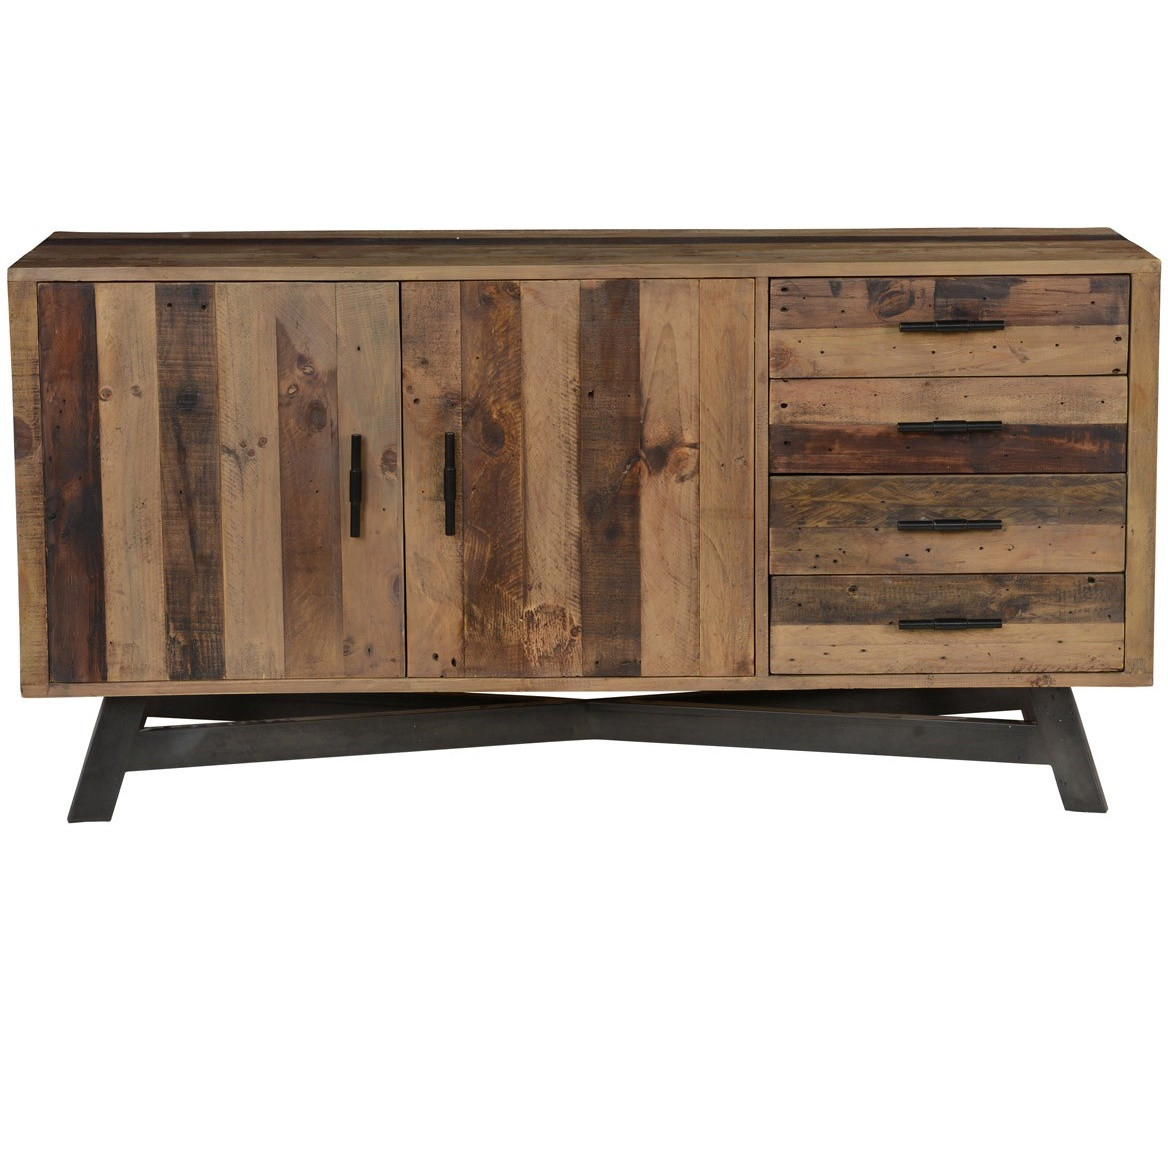 Farmhouse Rustic Reclaimed Wood Sideboard Buffet ... - Farmhouse Rustic Reclaimed Wood Sideboard Buffet Zin Home